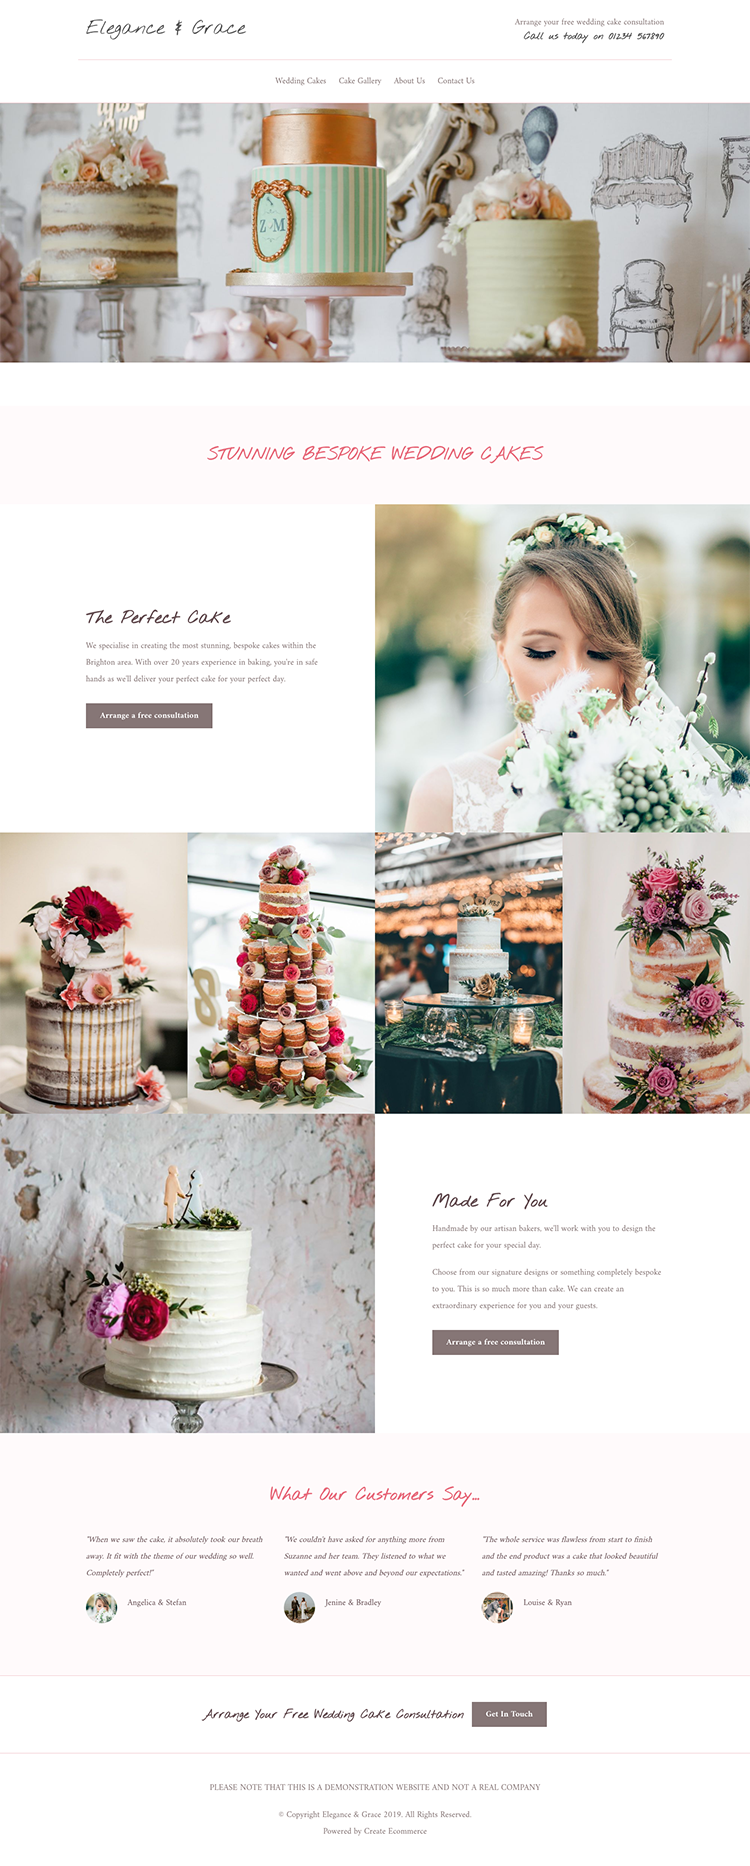 Elegance & Grace Cake Website Example